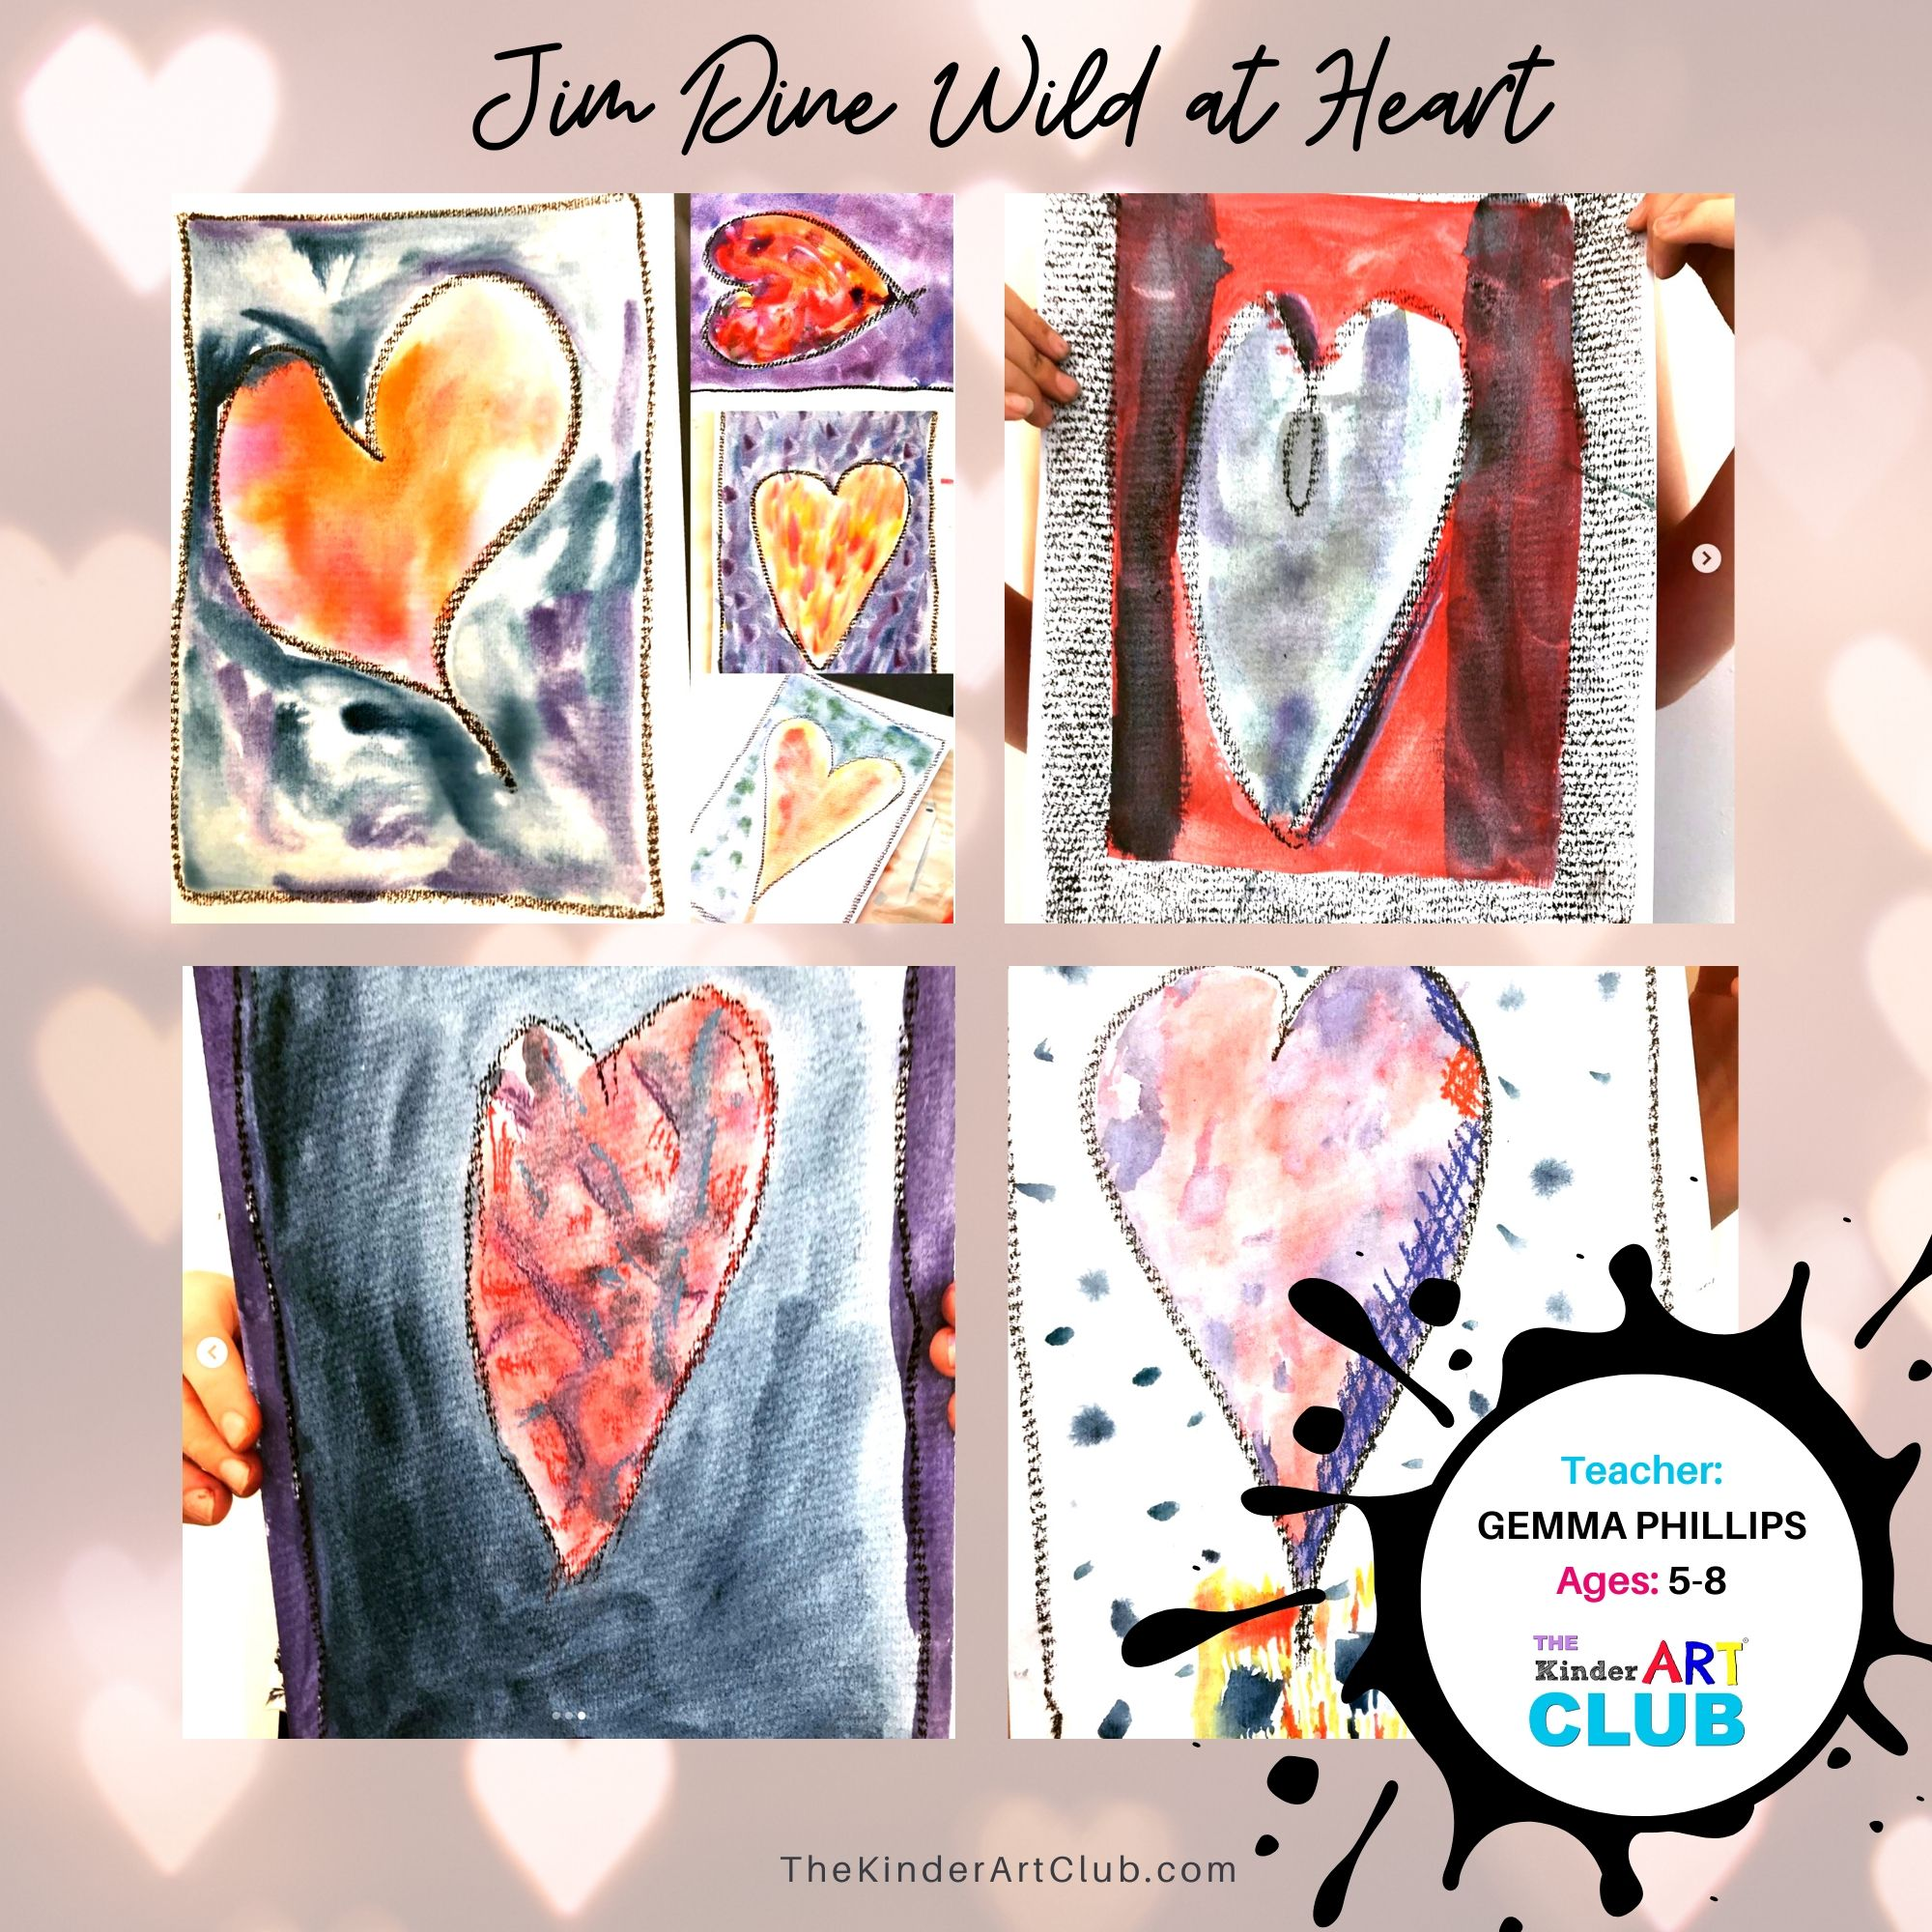 Jim Dine Wild at Heart